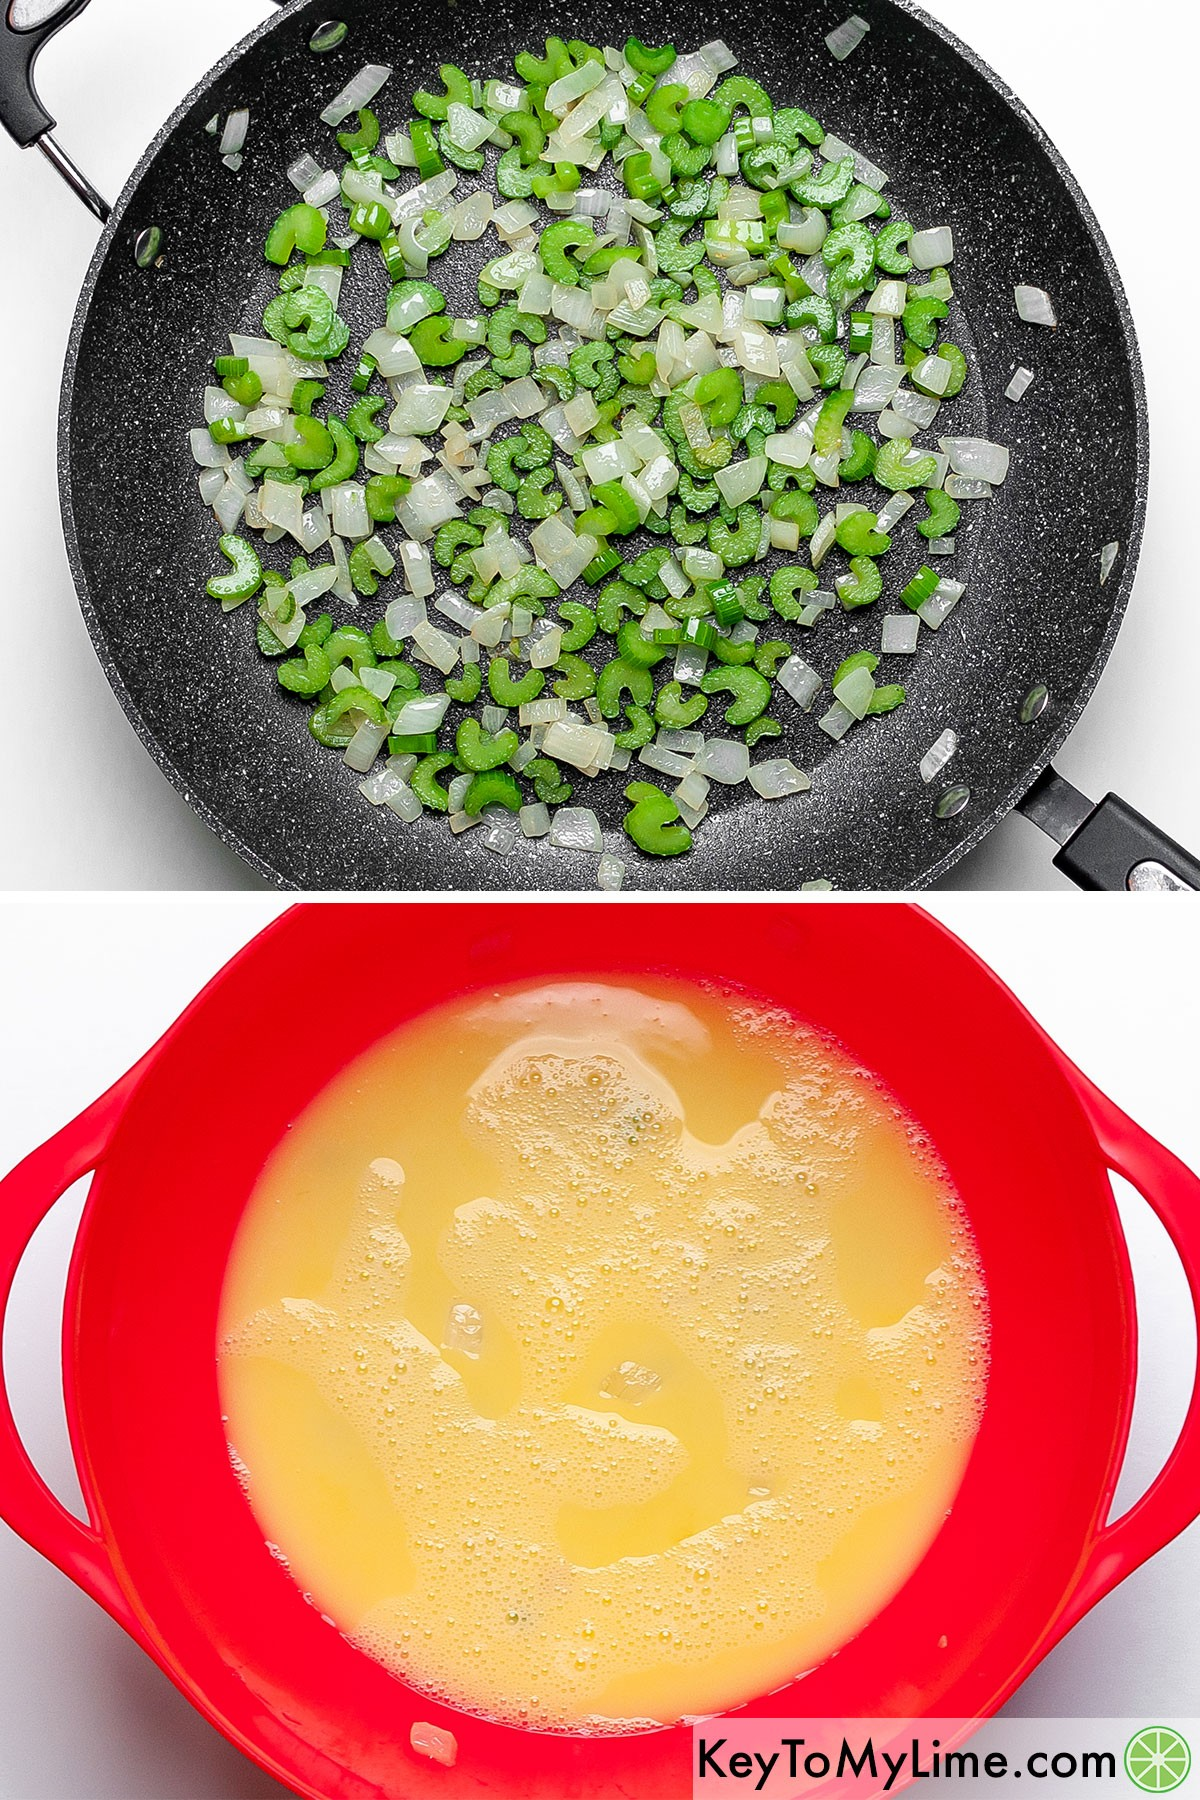 A process collage showing sauteing celery and onions, and mixing together chicken broth and eggs.